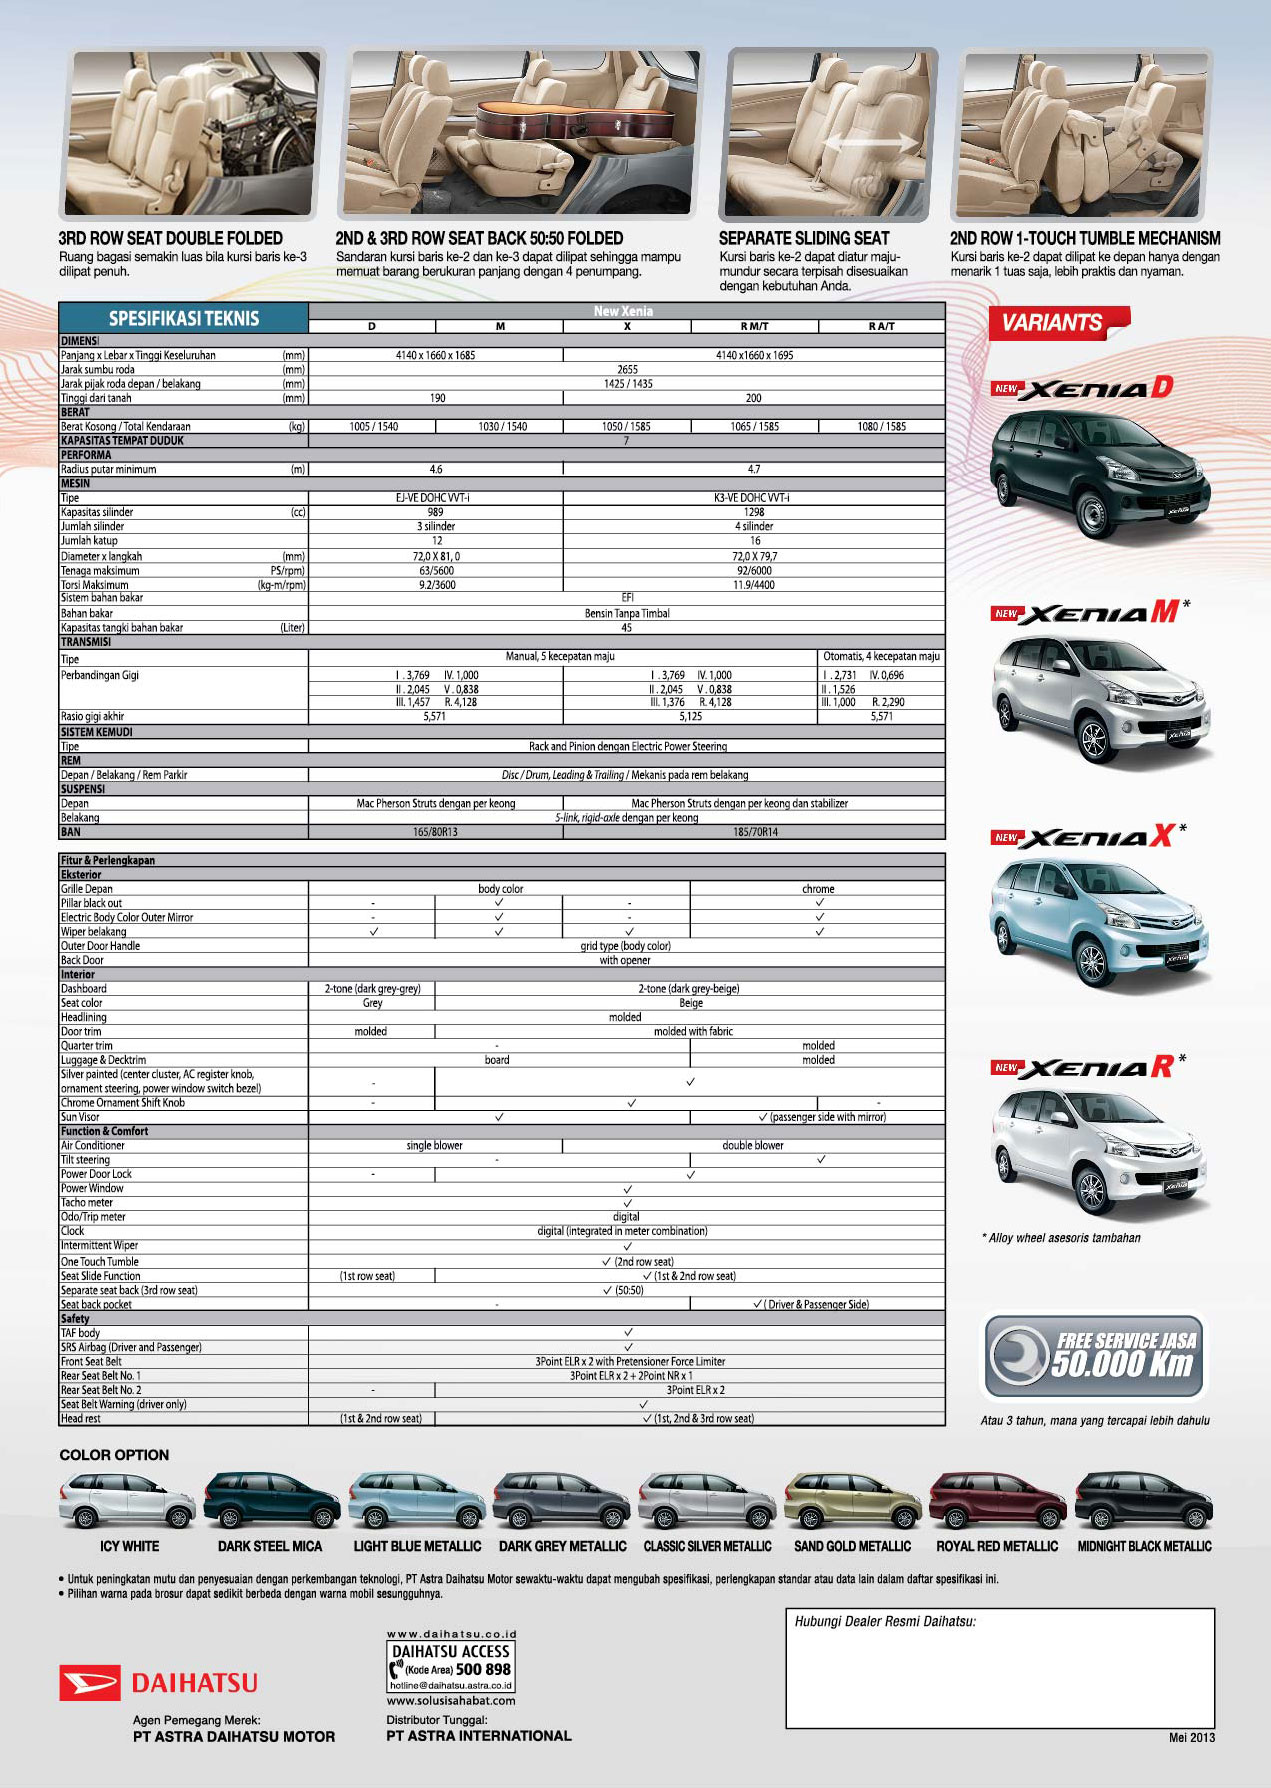 harga grand new veloz 2016 second avanza 2015 all dan spesifikasi